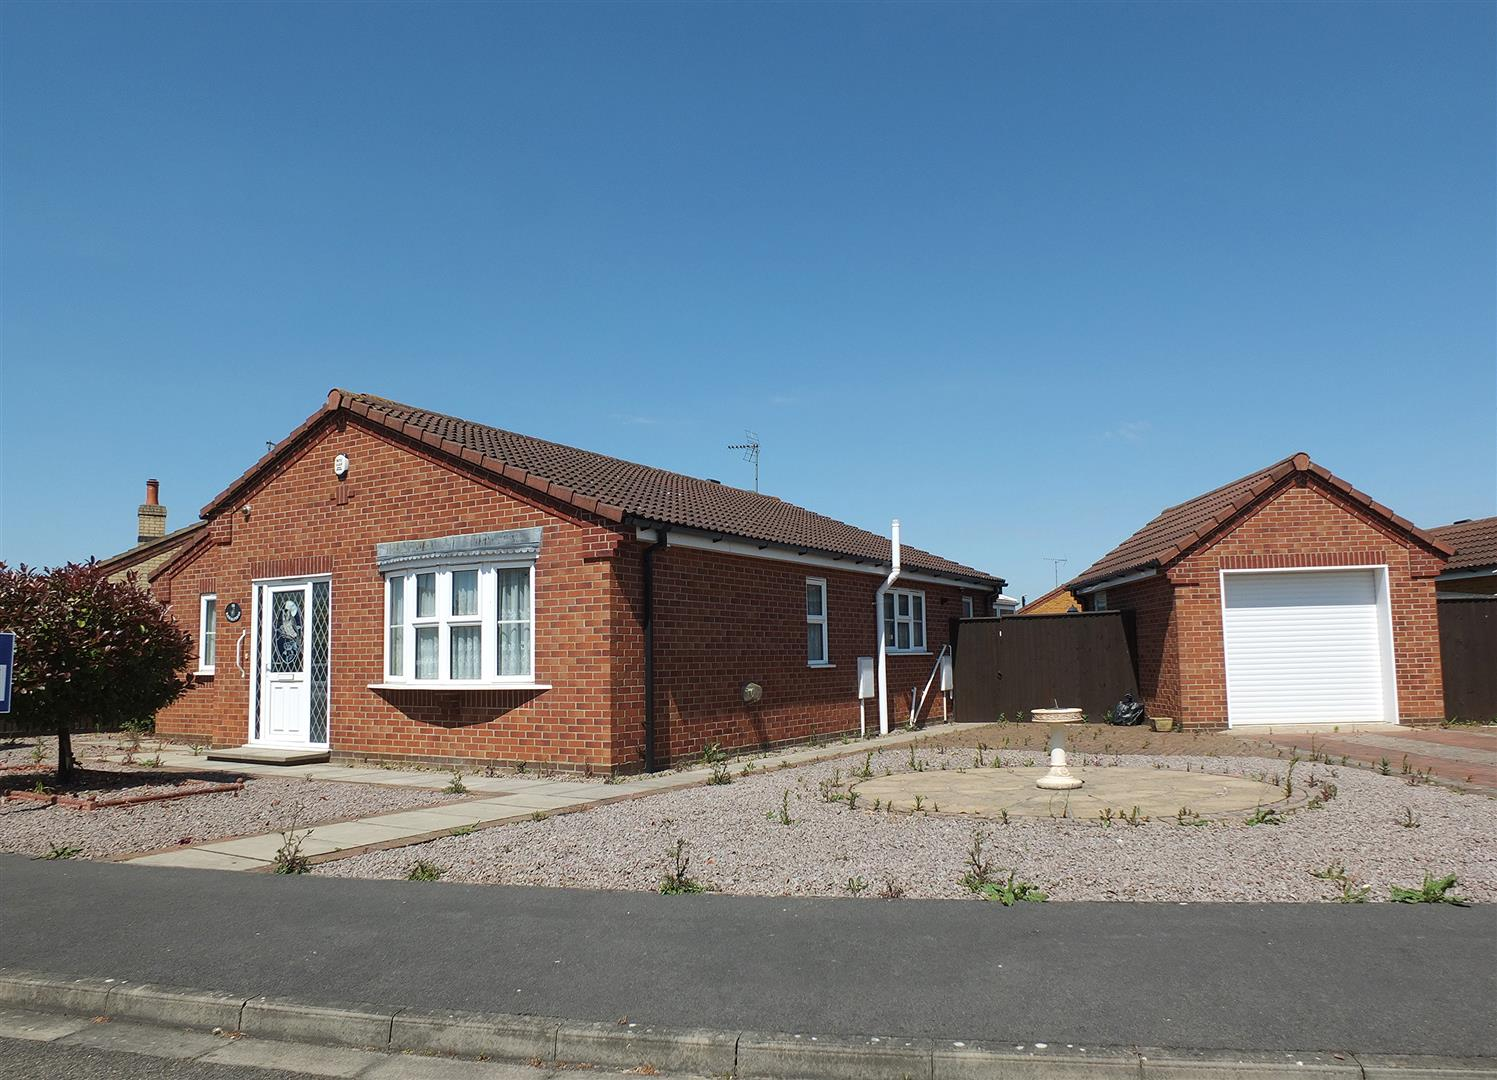 3 bed detached bungalow for sale in Long Sutton Spalding, PE12 9FR, PE12